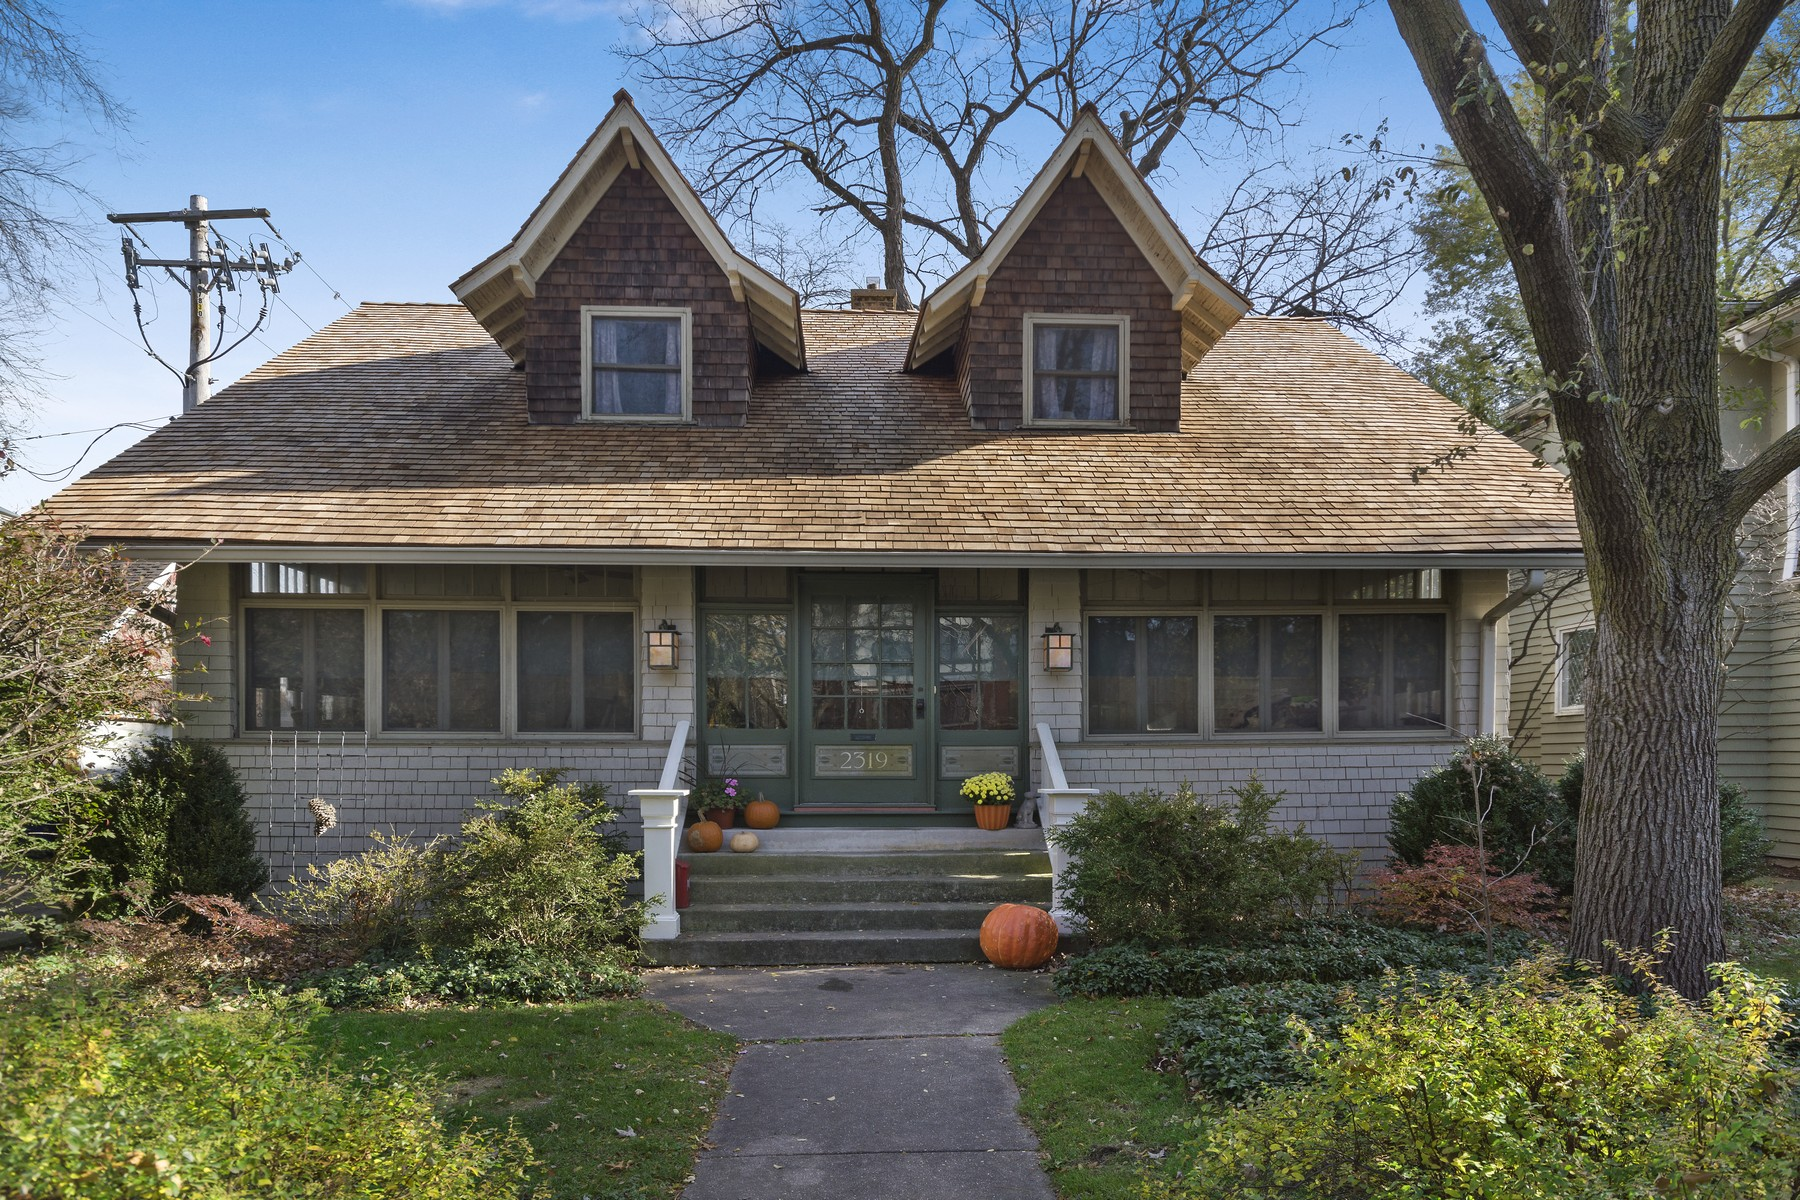 Maison unifamiliale pour l Vente à Charming Arts And Crafts Landmark Home 2319 Sherman Avenue Evanston, Illinois, 60201 États-Unis